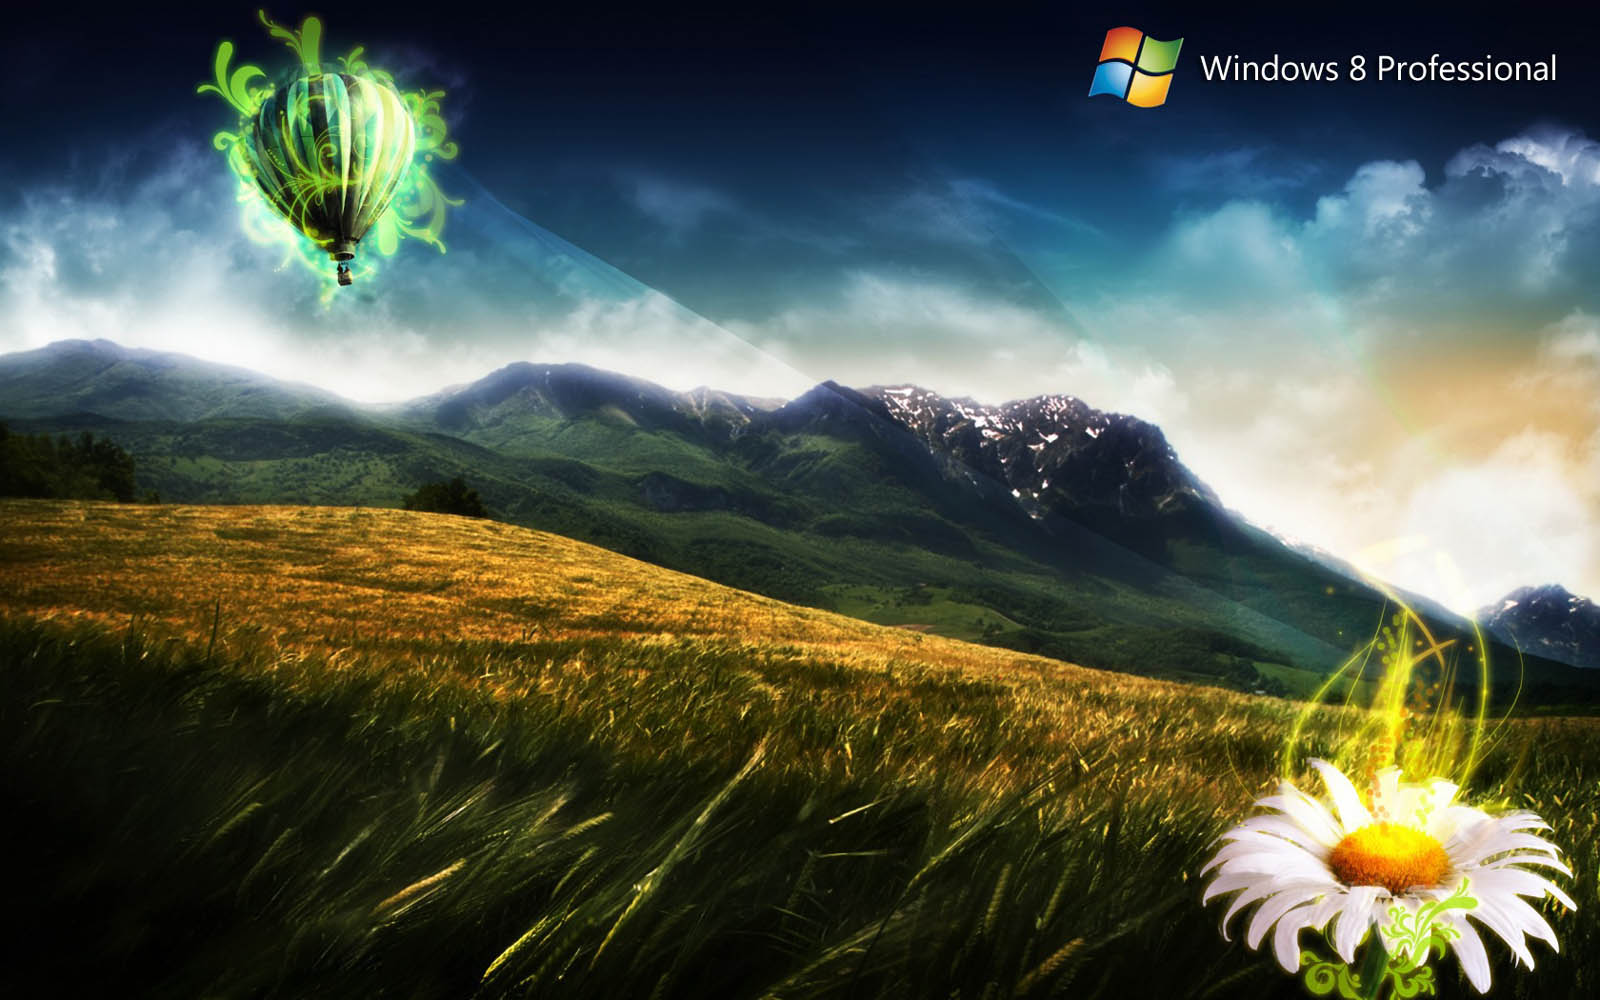 wallpapers Windows 8 Desktop Wallpapers and Backgrounds 1600x1000